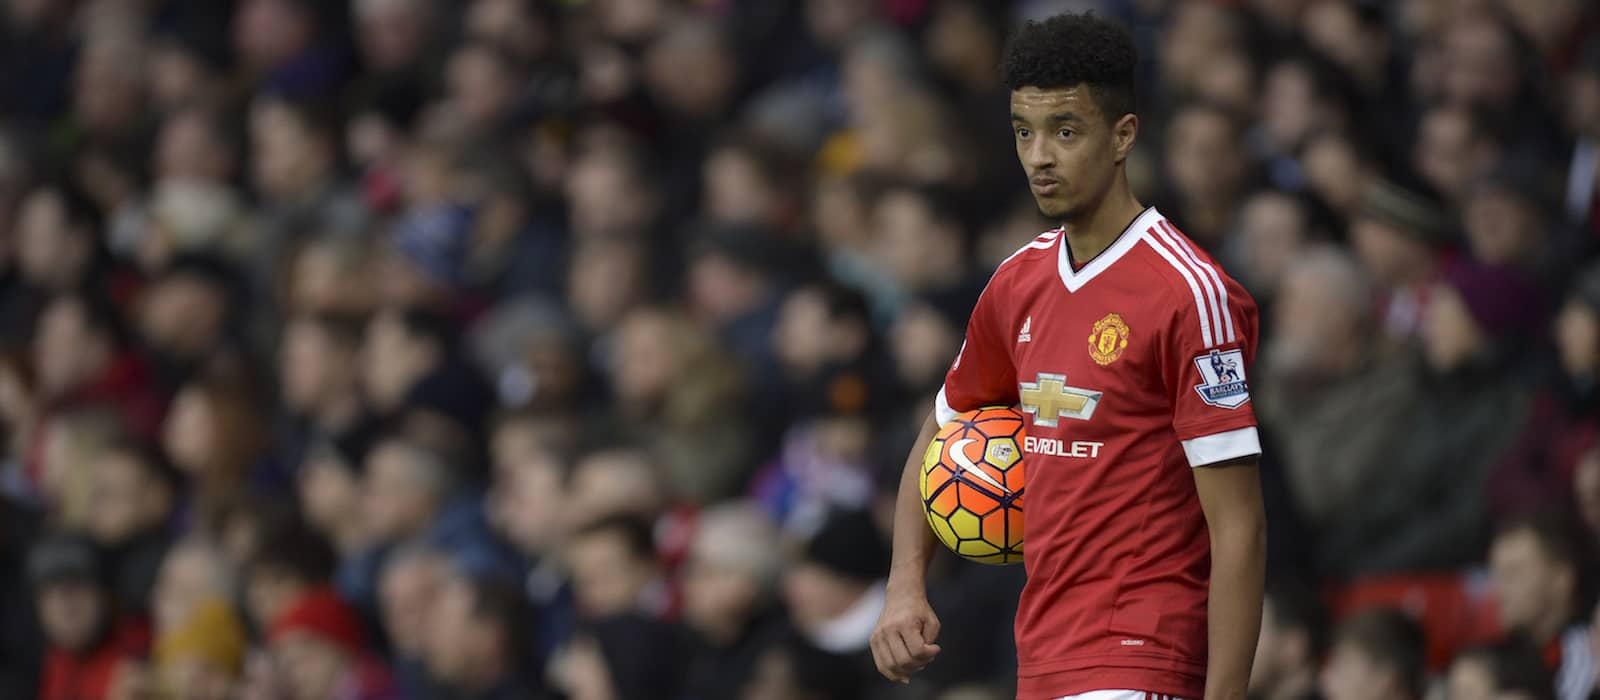 Cameron Borthwick-Jackson must fight for Wolves place says Paul Lambert